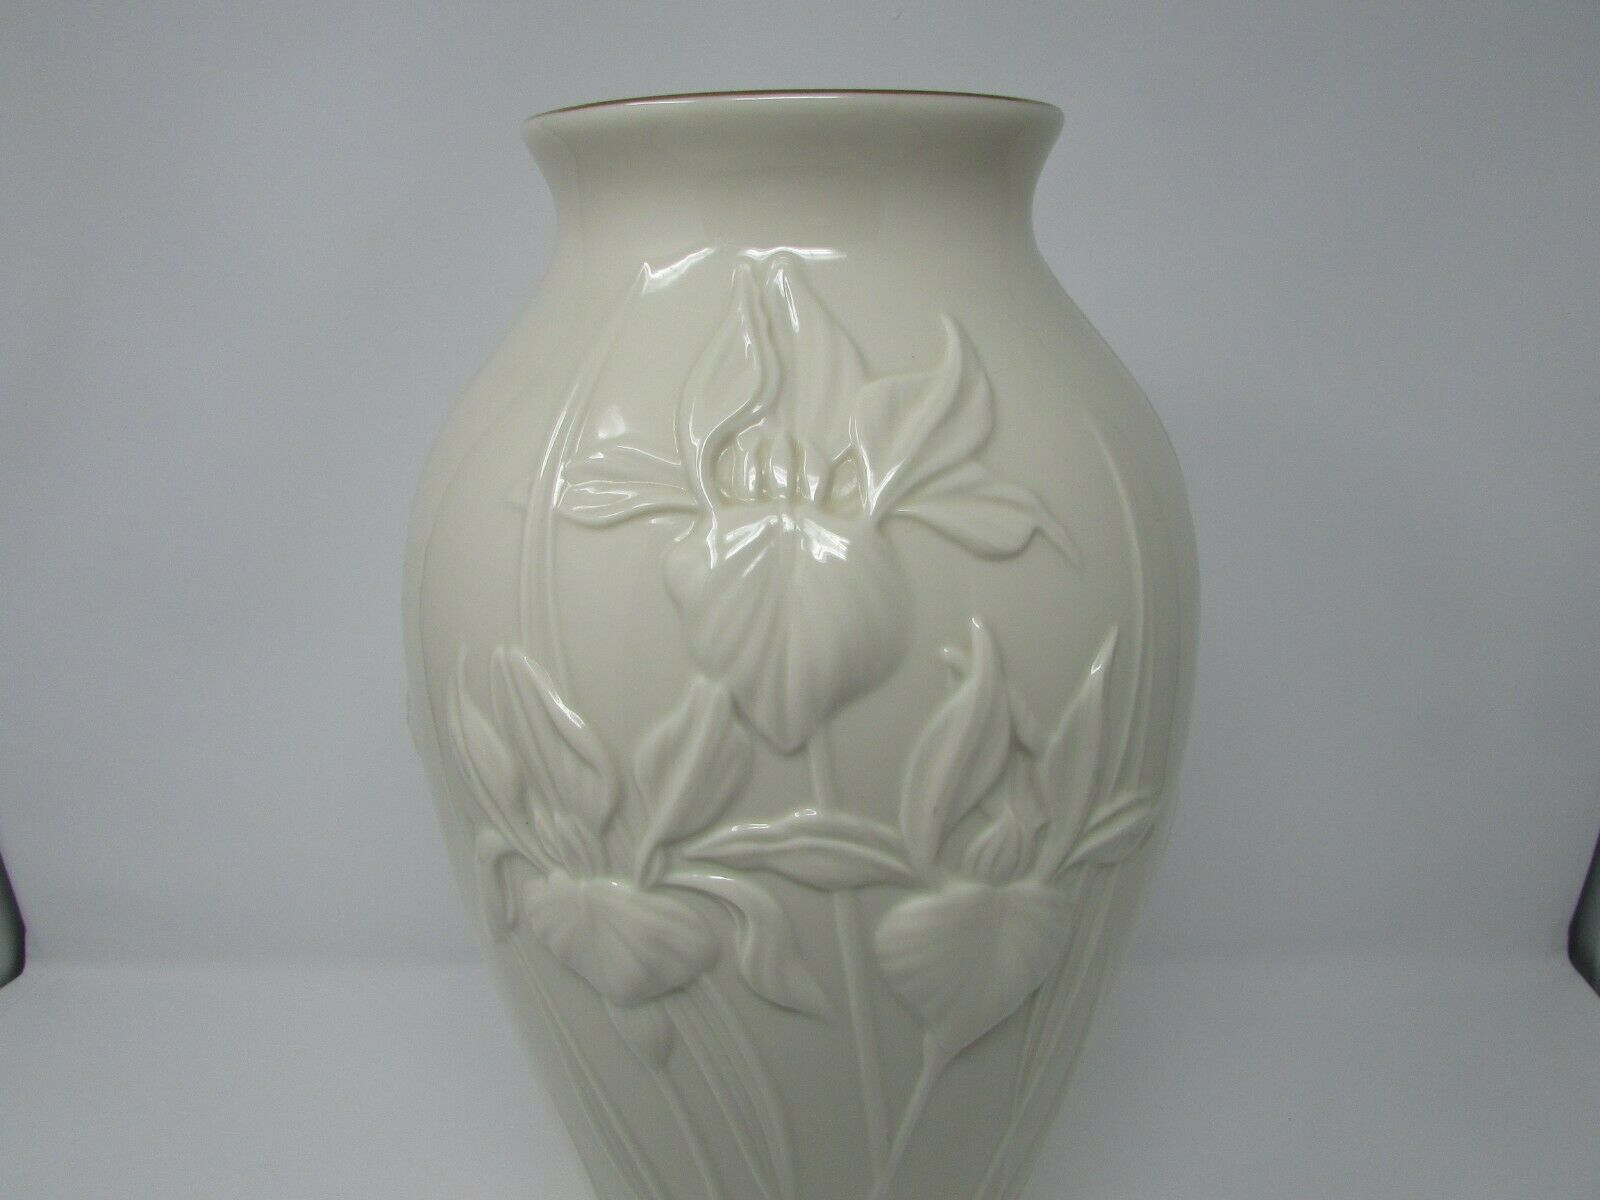 "LENOX BONE CHINA FLORAL VASE IRIS PATTERN 14-3/4""H GOLD RIMMED IVORY EMBOSSED"